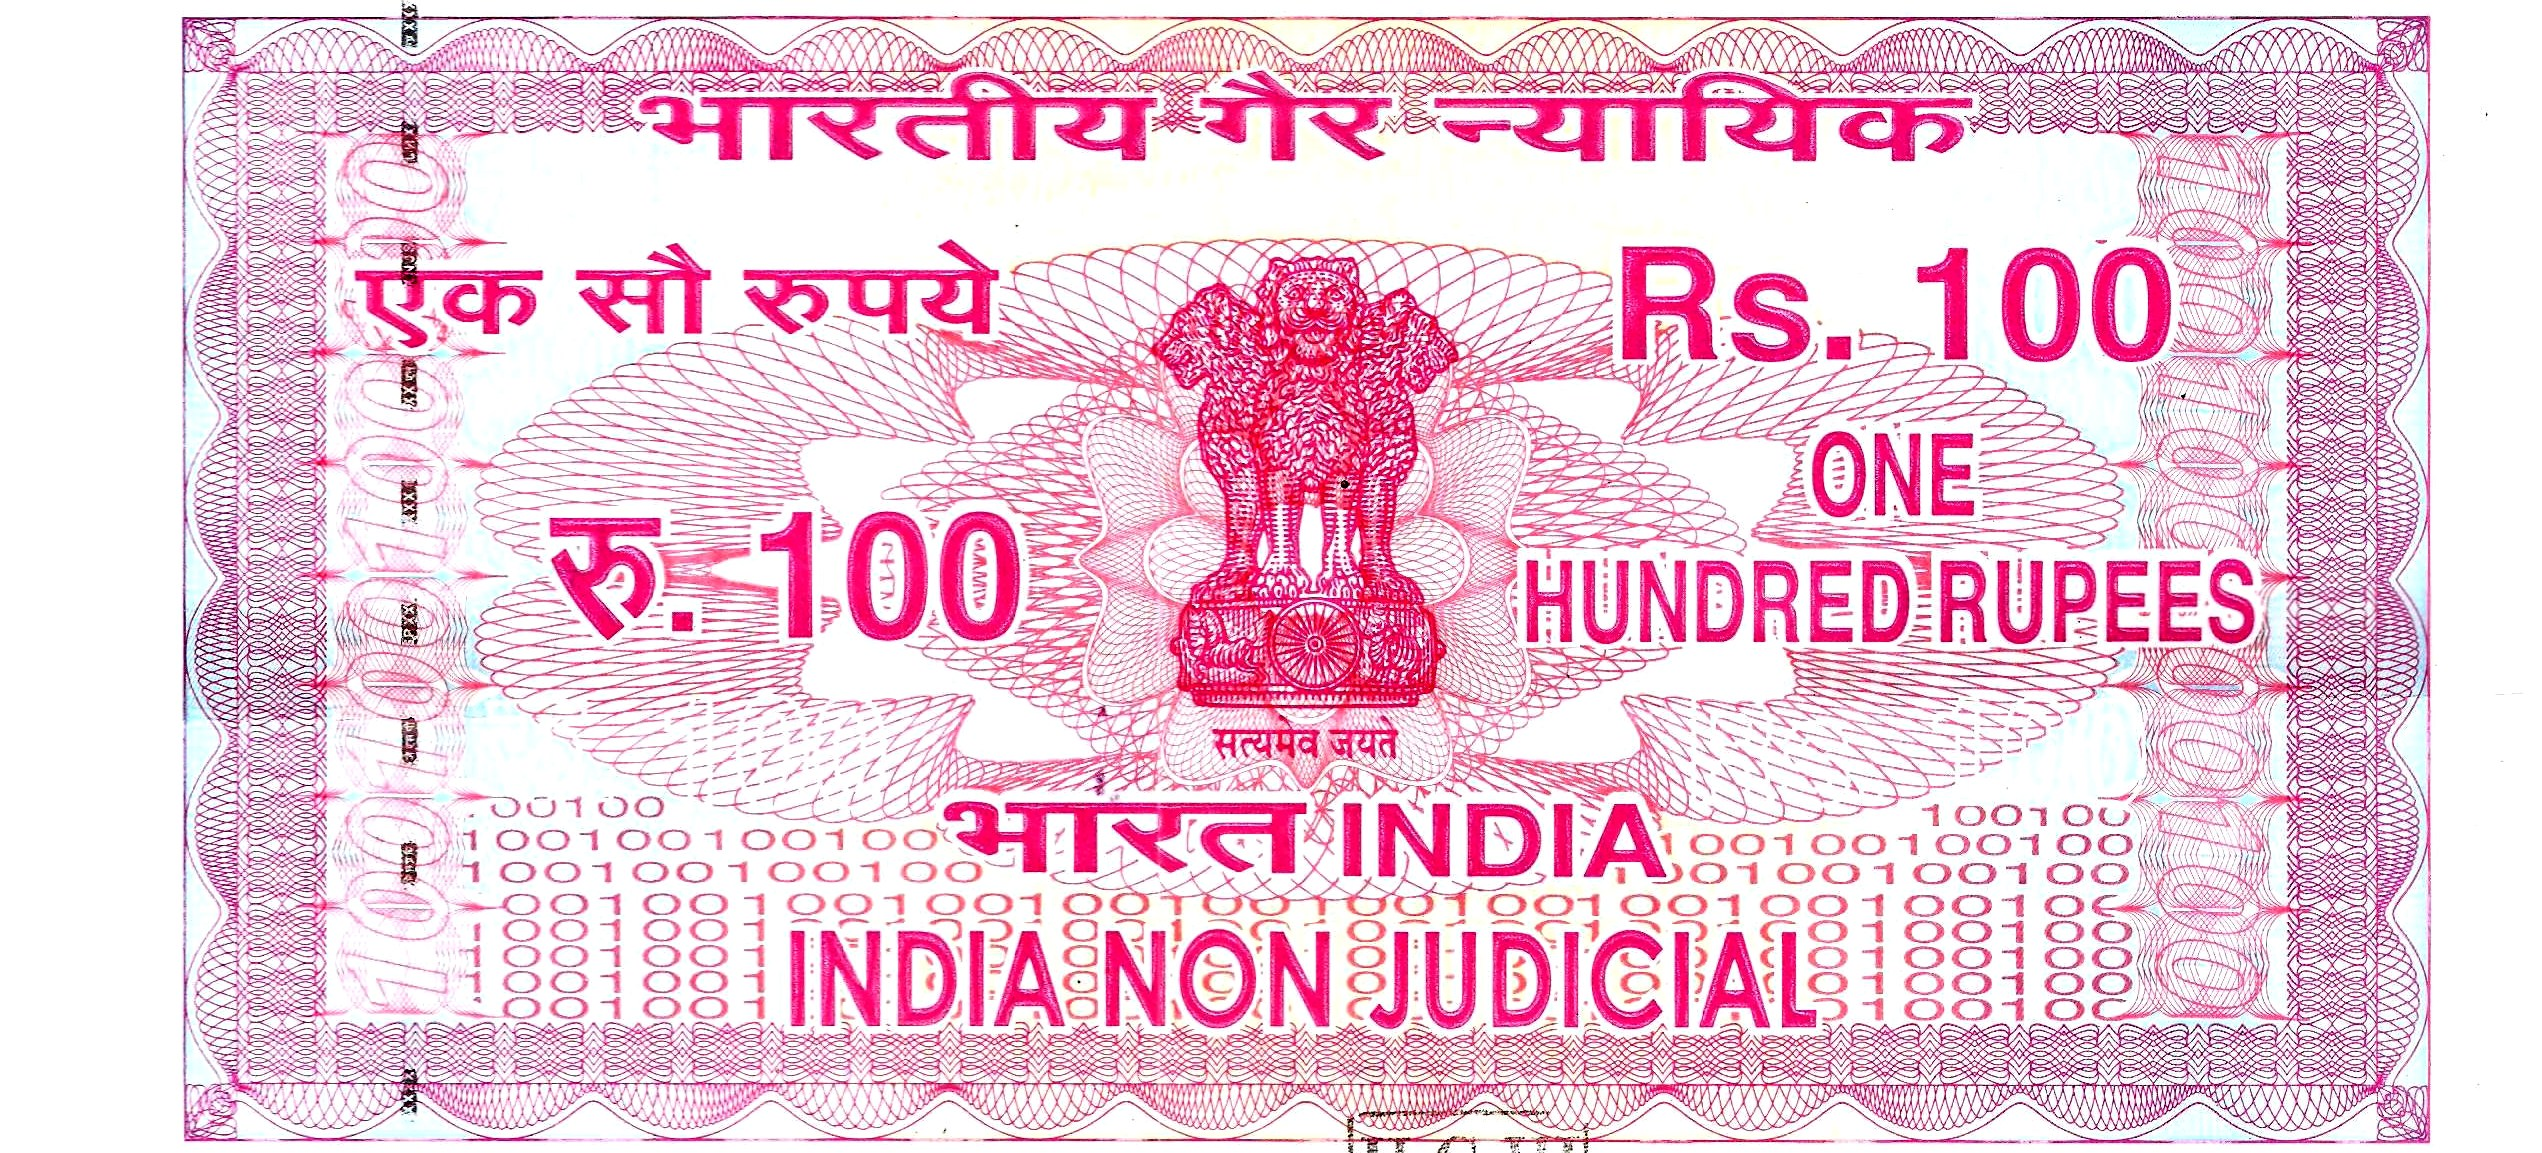 Prepare a Non Judicial Affidavit in India | Allied Legal